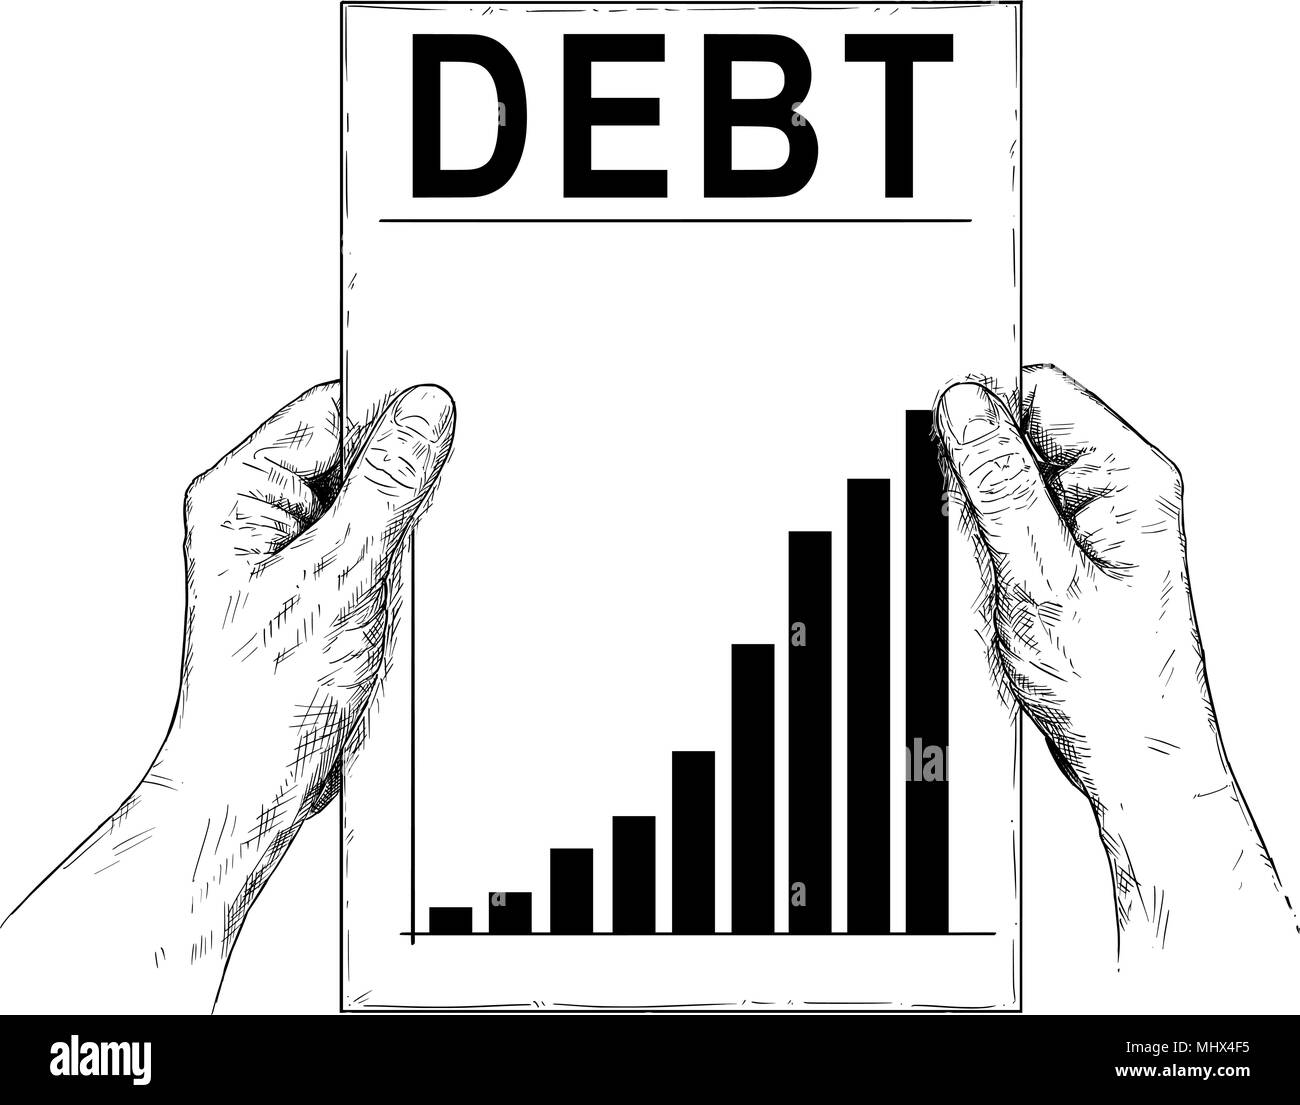 Vector Artistic Illustration or Drawing of Hands Holding Document With Raising Debt Chart or Graph - Stock Vector